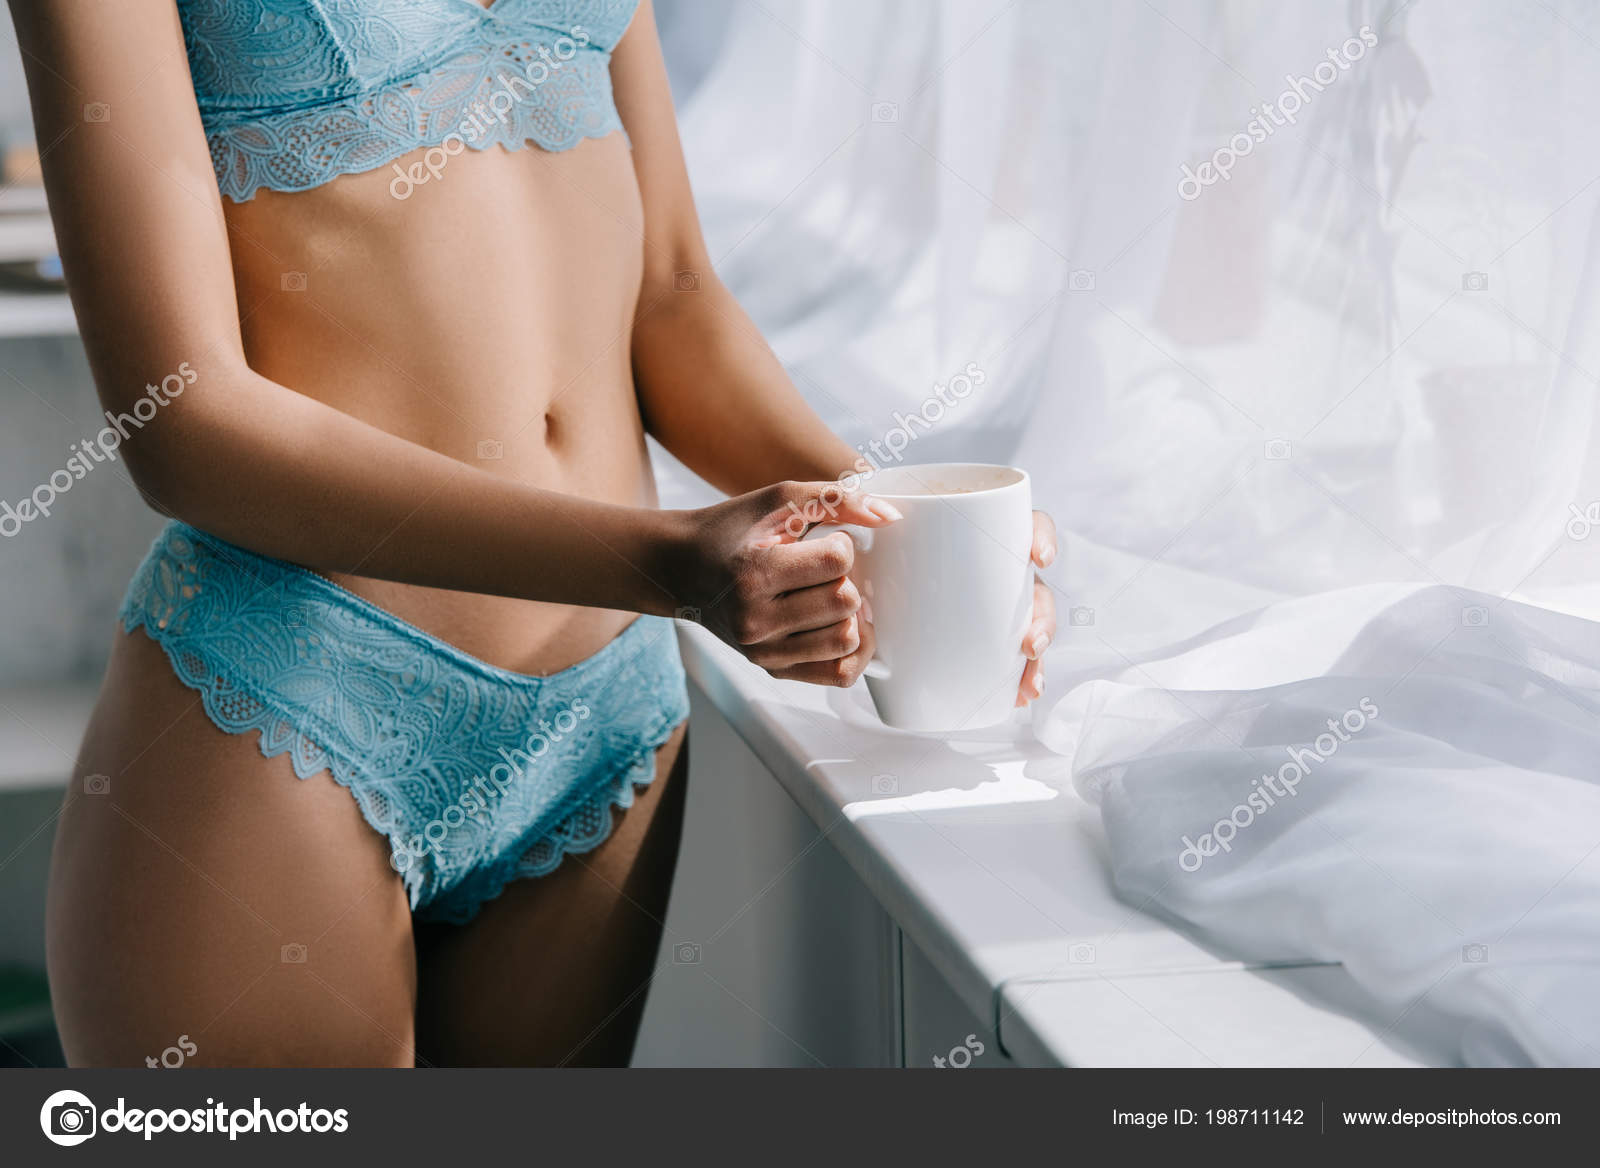 Black women in lingerie wallpaper 5 422 African Woman Lingerie Stock Photos Free Royalty Free African Woman Lingerie Images Depositphotos